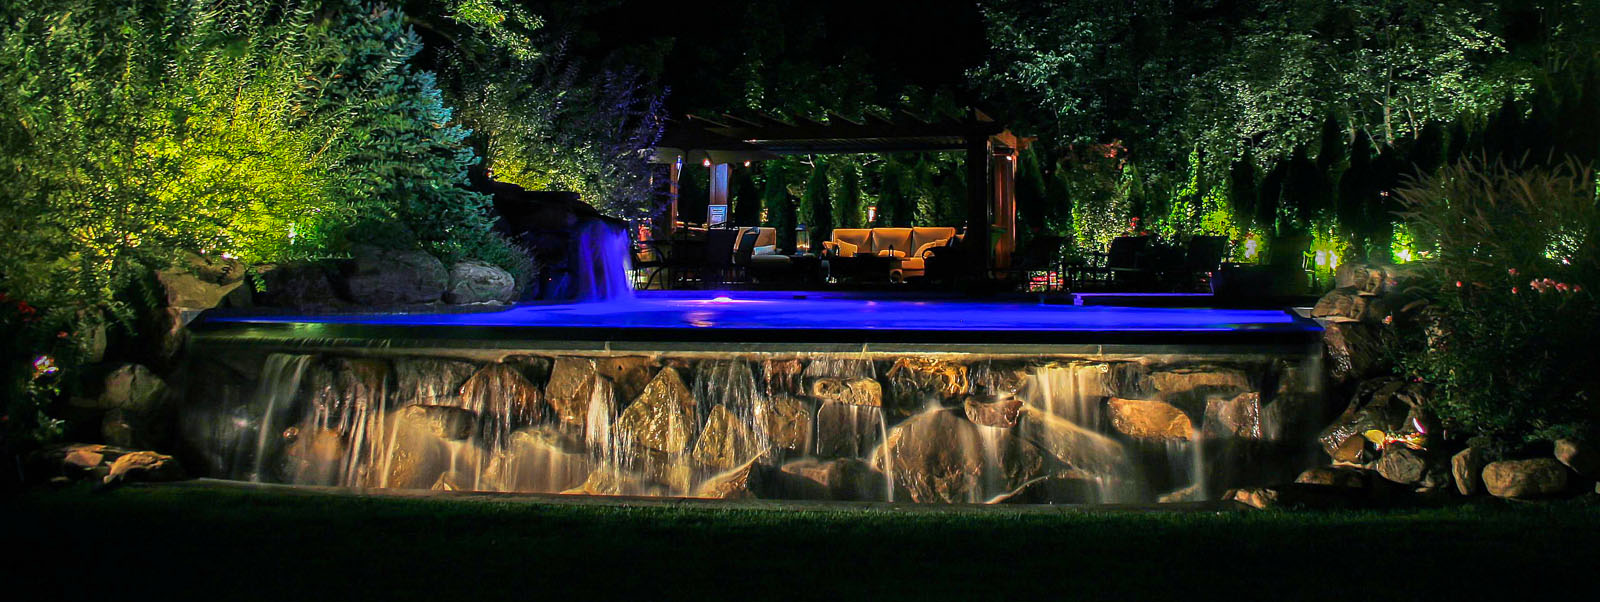 landscape lighting and pool lighting illuminate backyard landscape